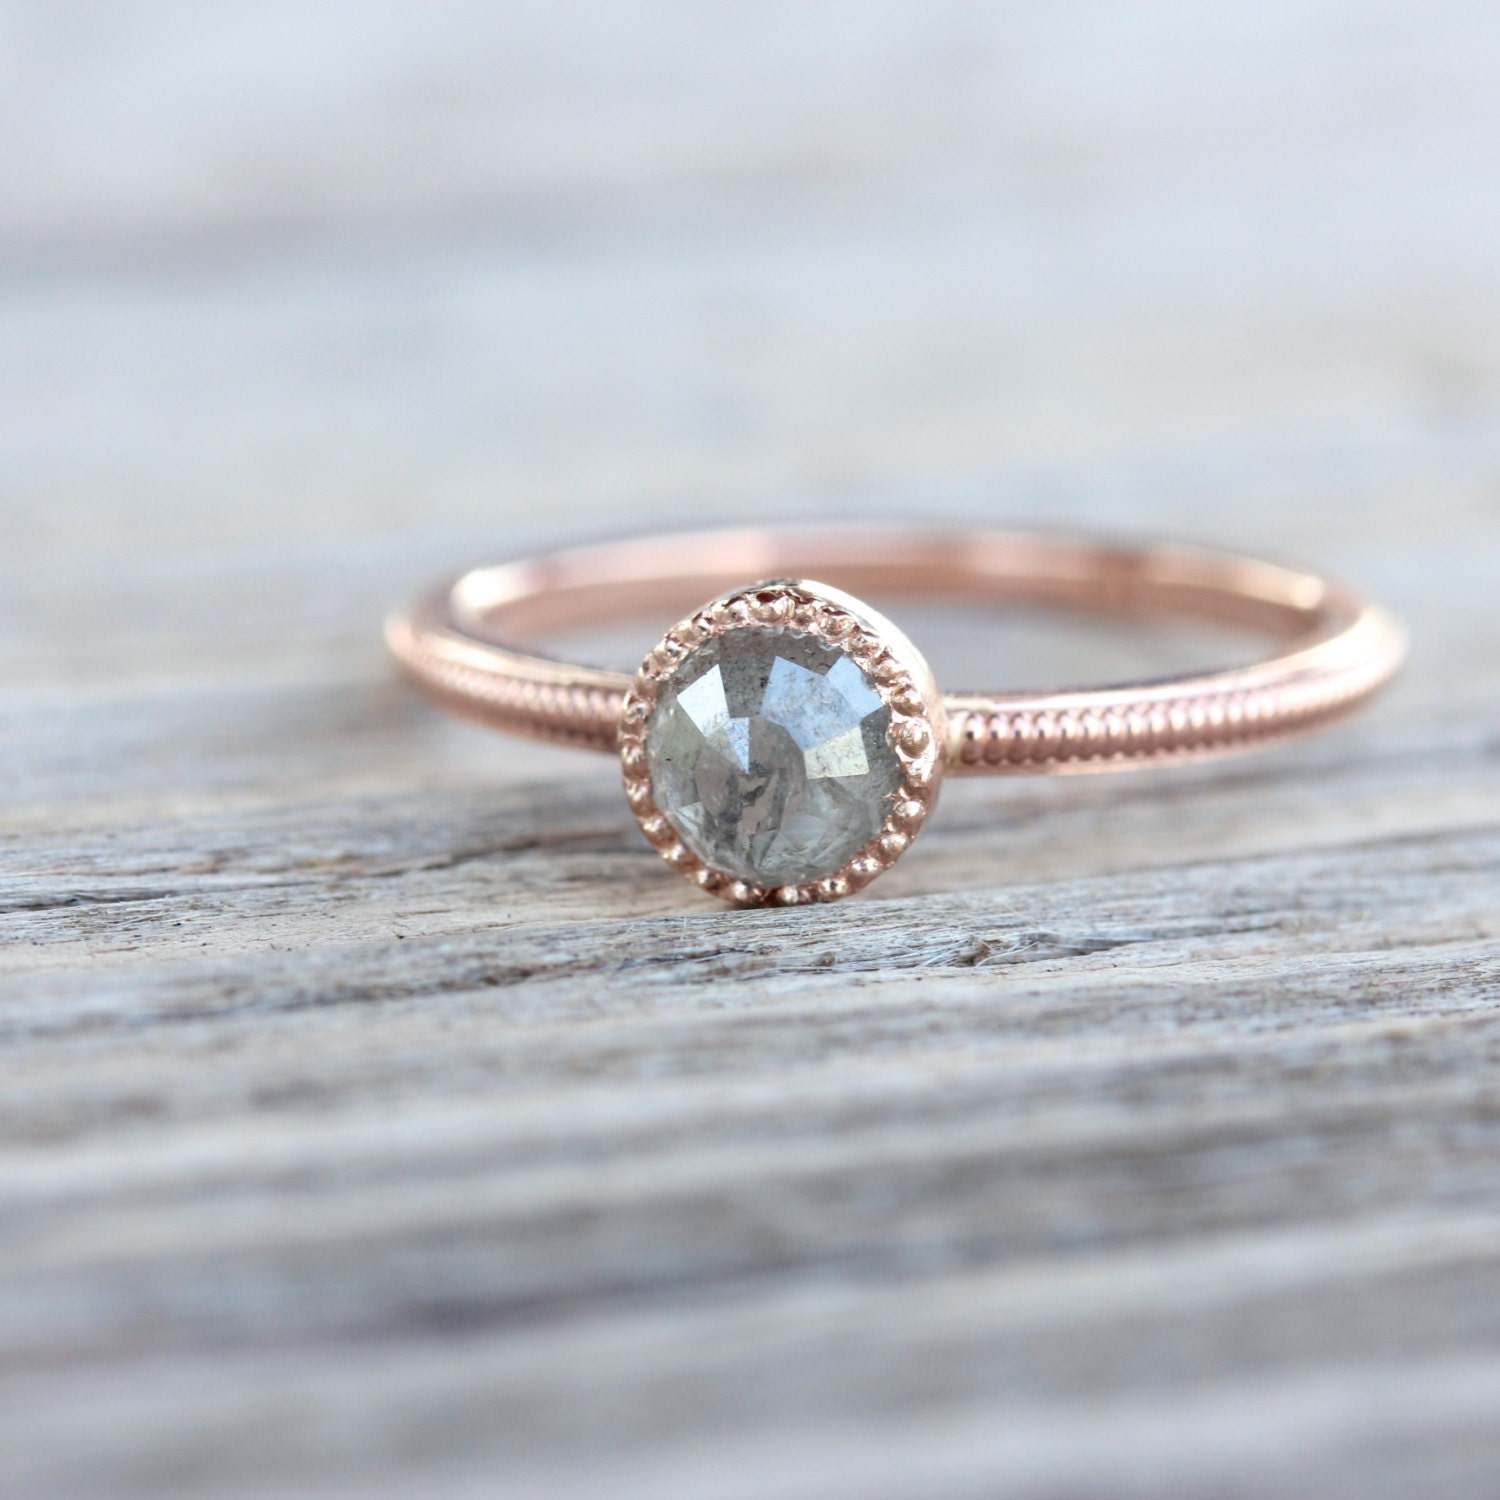 rose cut gray diamond engagement ring 14k rose gold milgrain